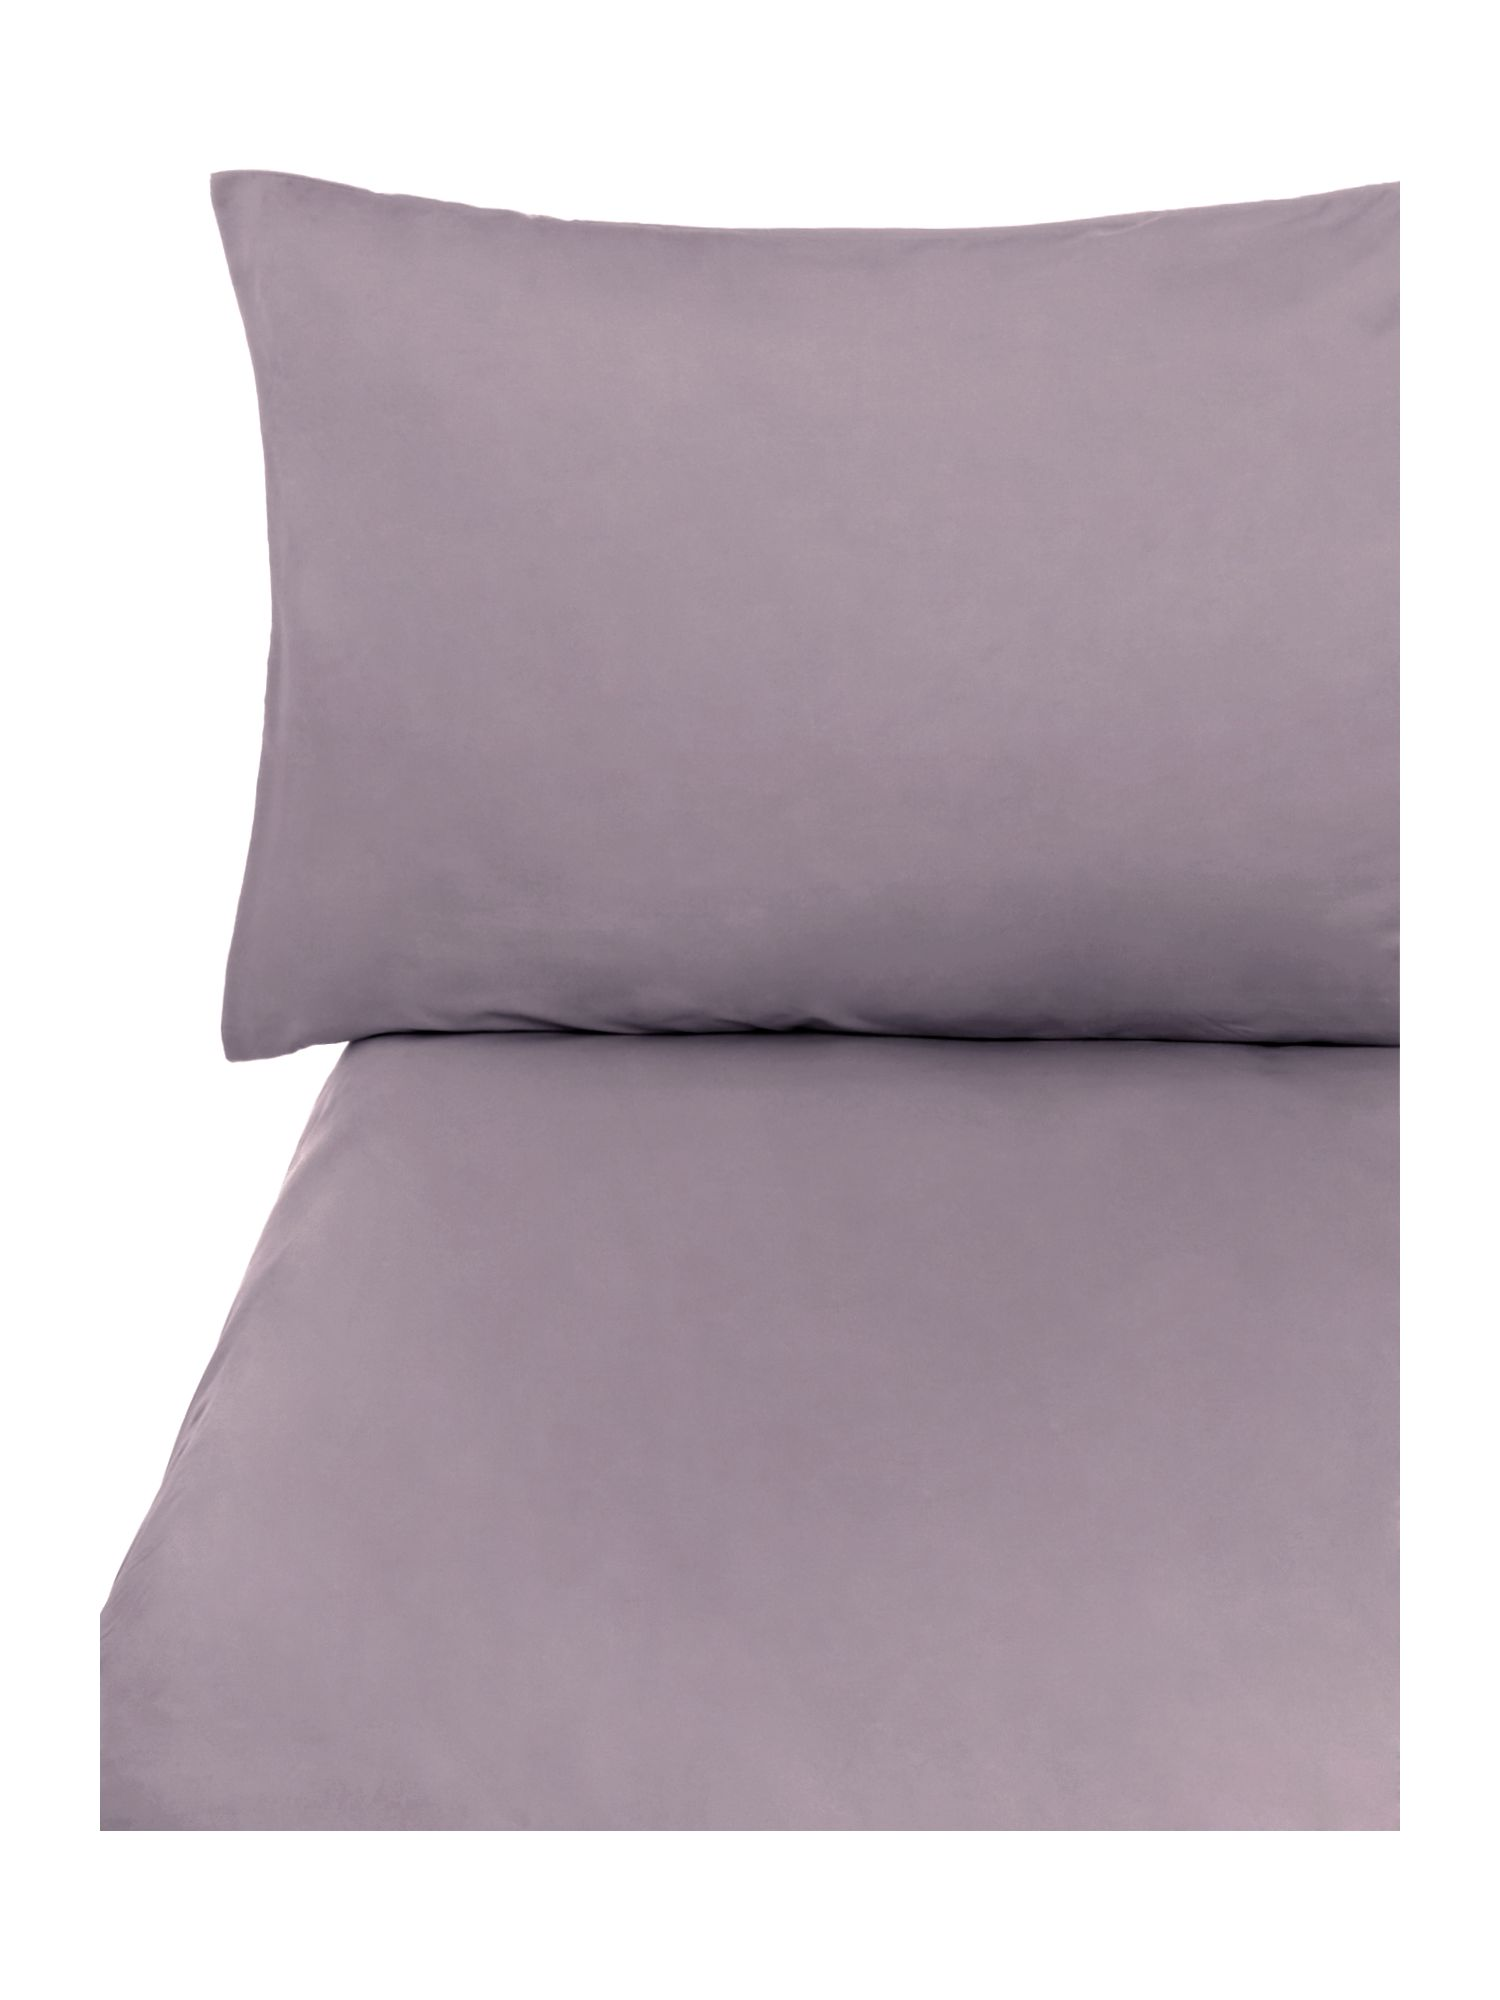 Amethyst sheets housewife pillowcase pair